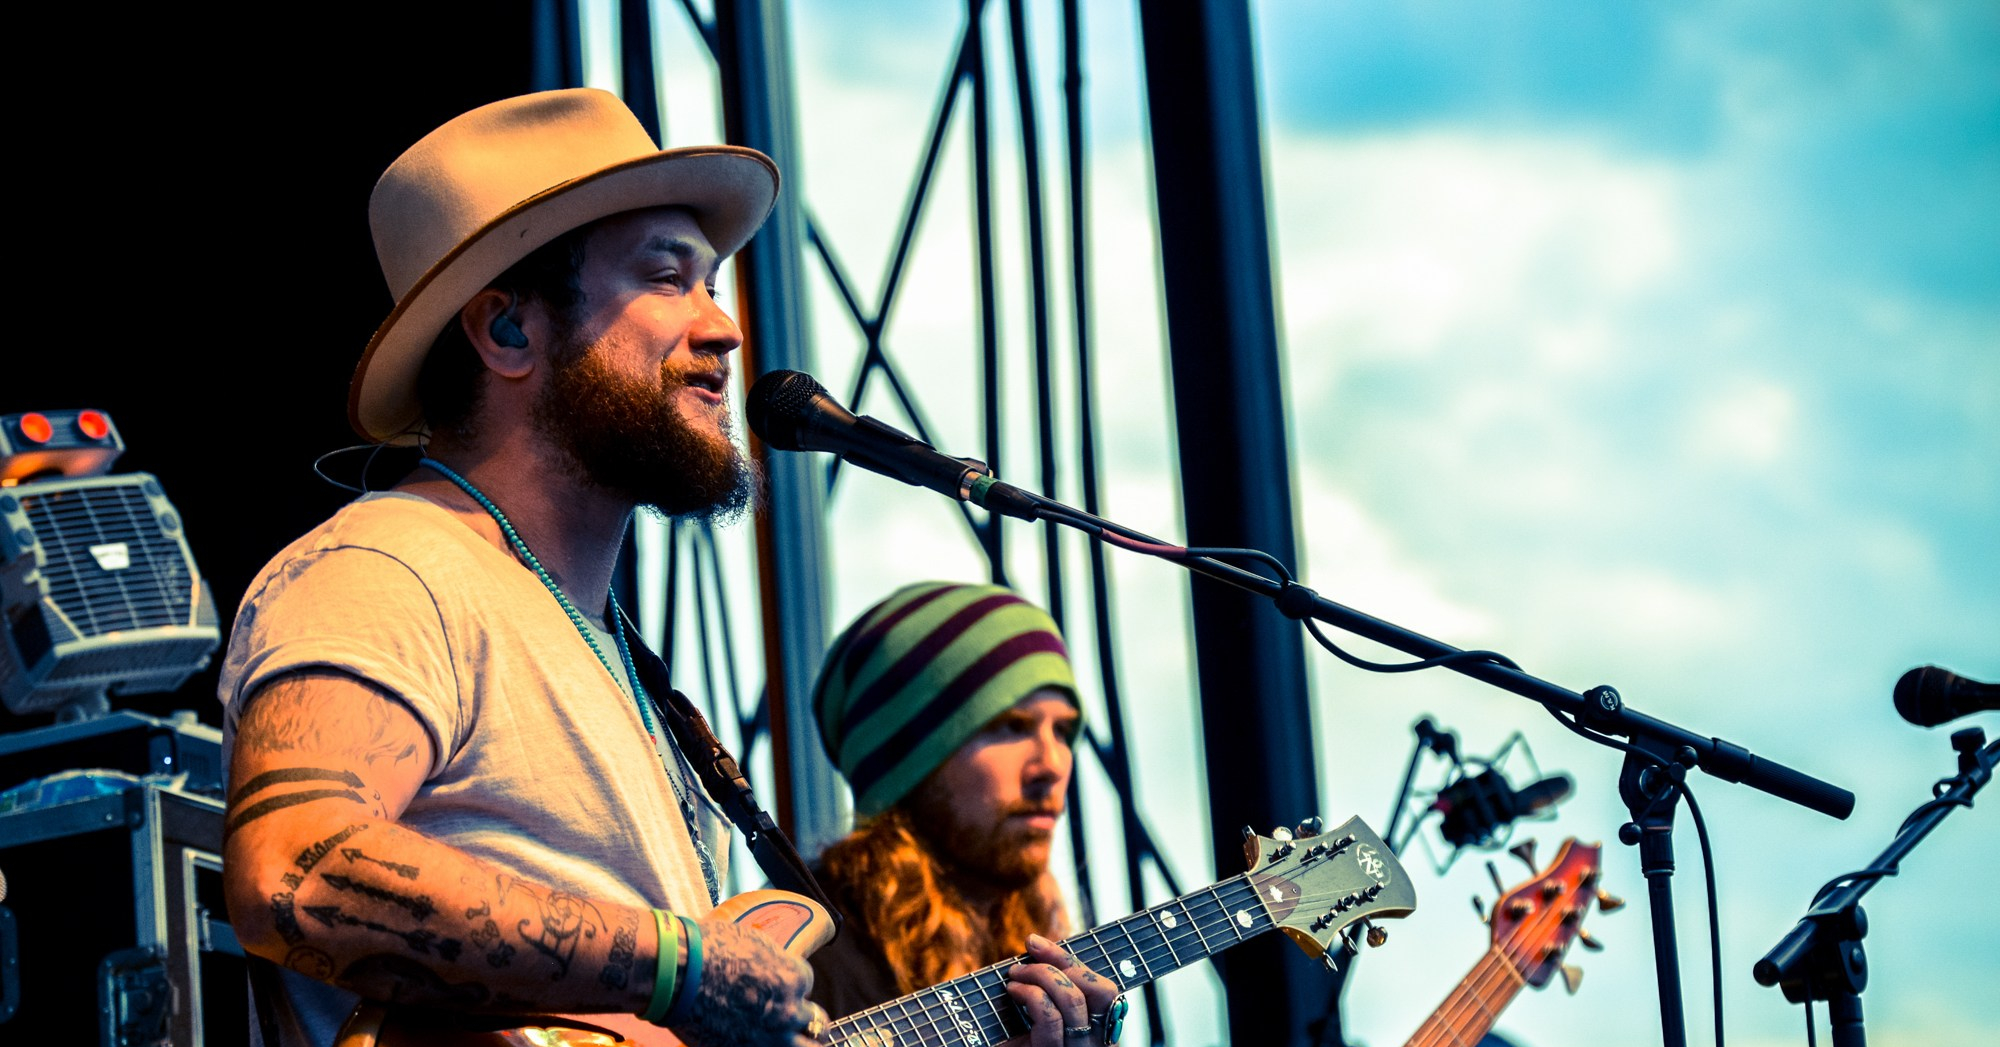 Gallery: Twiddle and Ripe at Canalside Live Series in Buffalo, NY